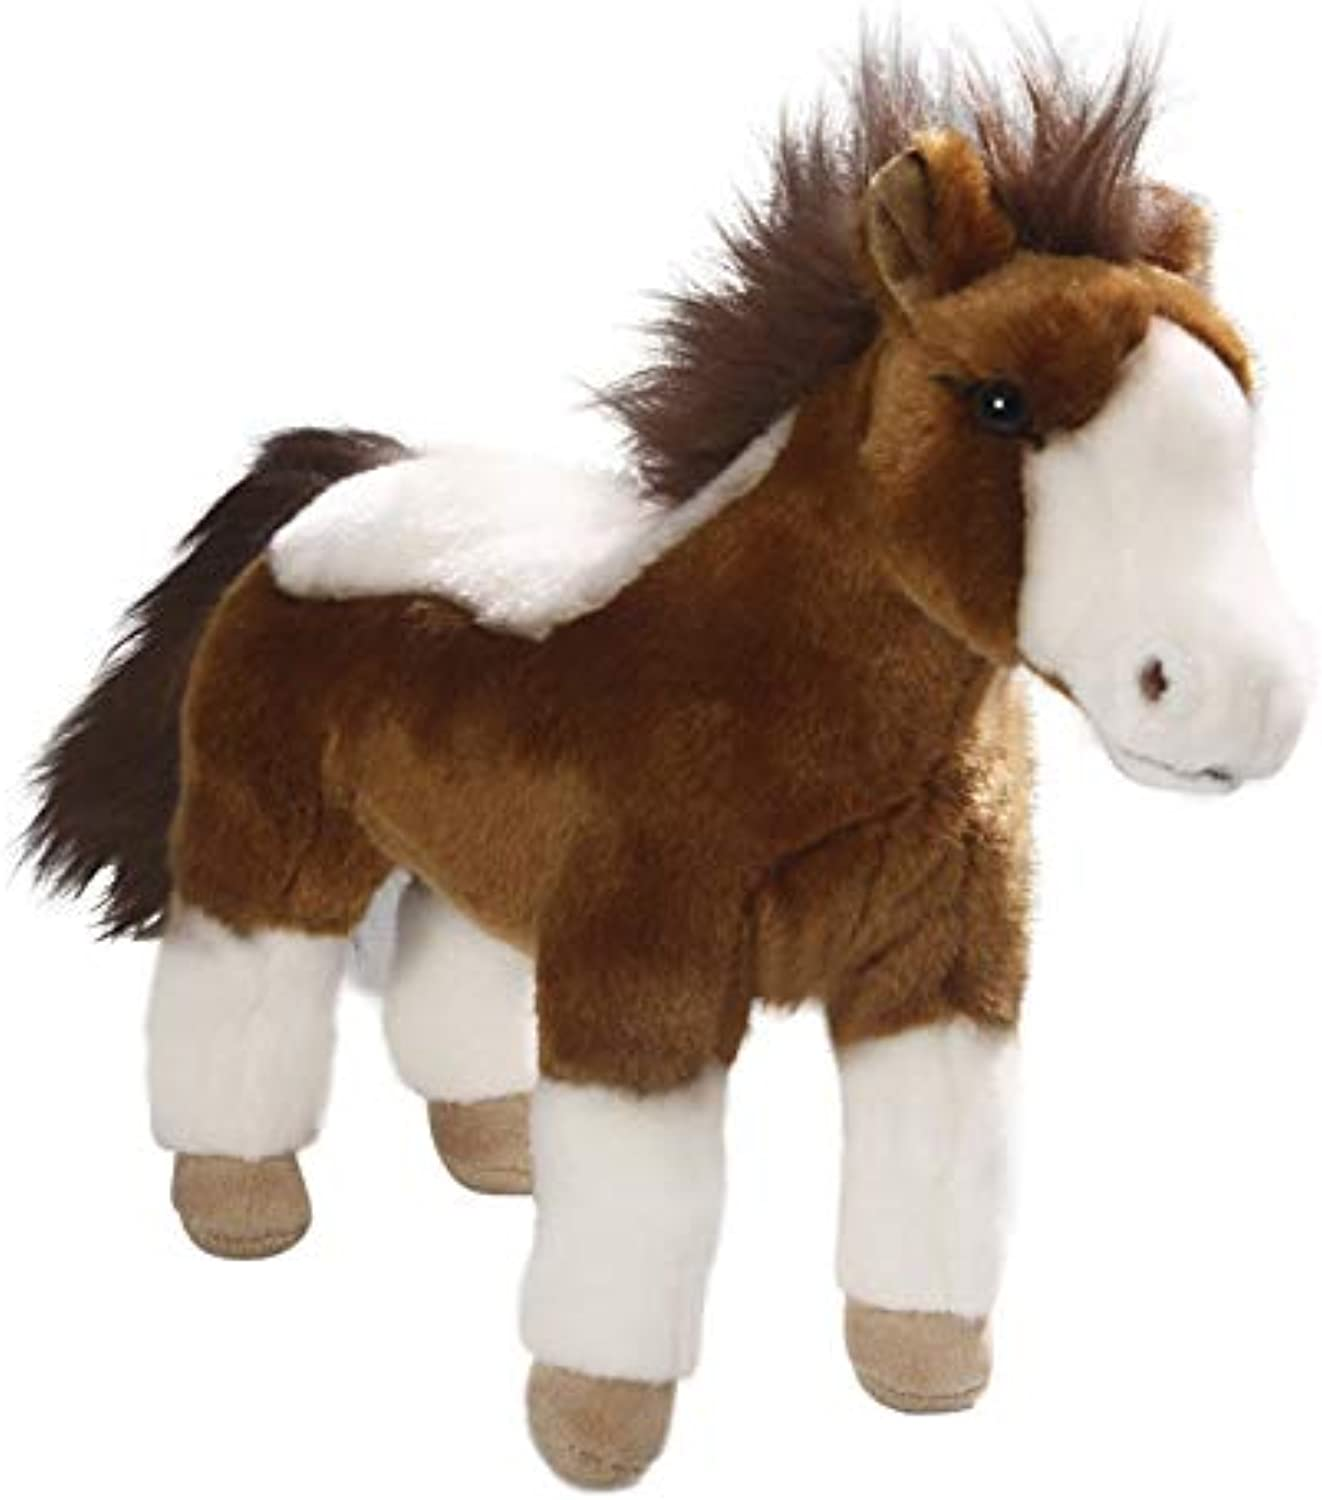 Horse Standing Brown-White, 12.5 inches, 35cm, Plush Toy, Soft Toy, Stuffed Animal 3287002